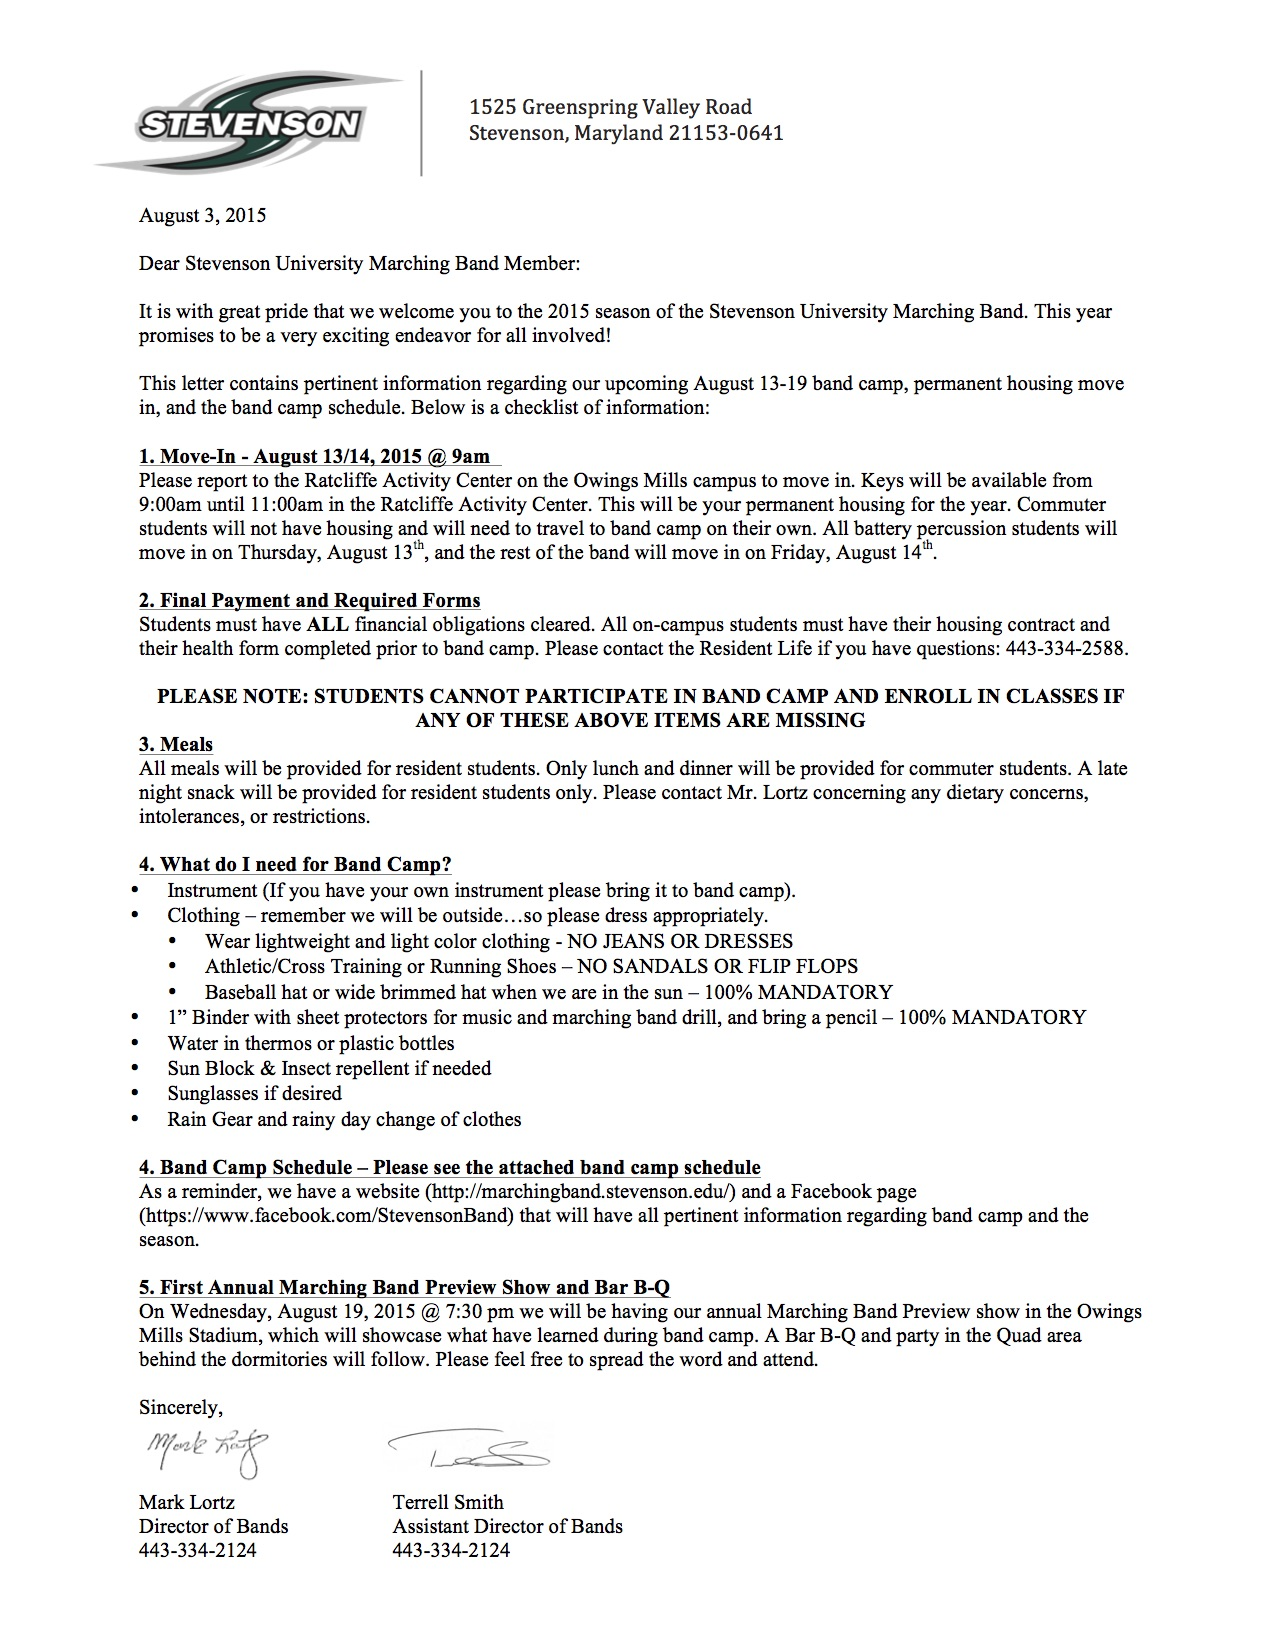 2015 Band Camp Letter